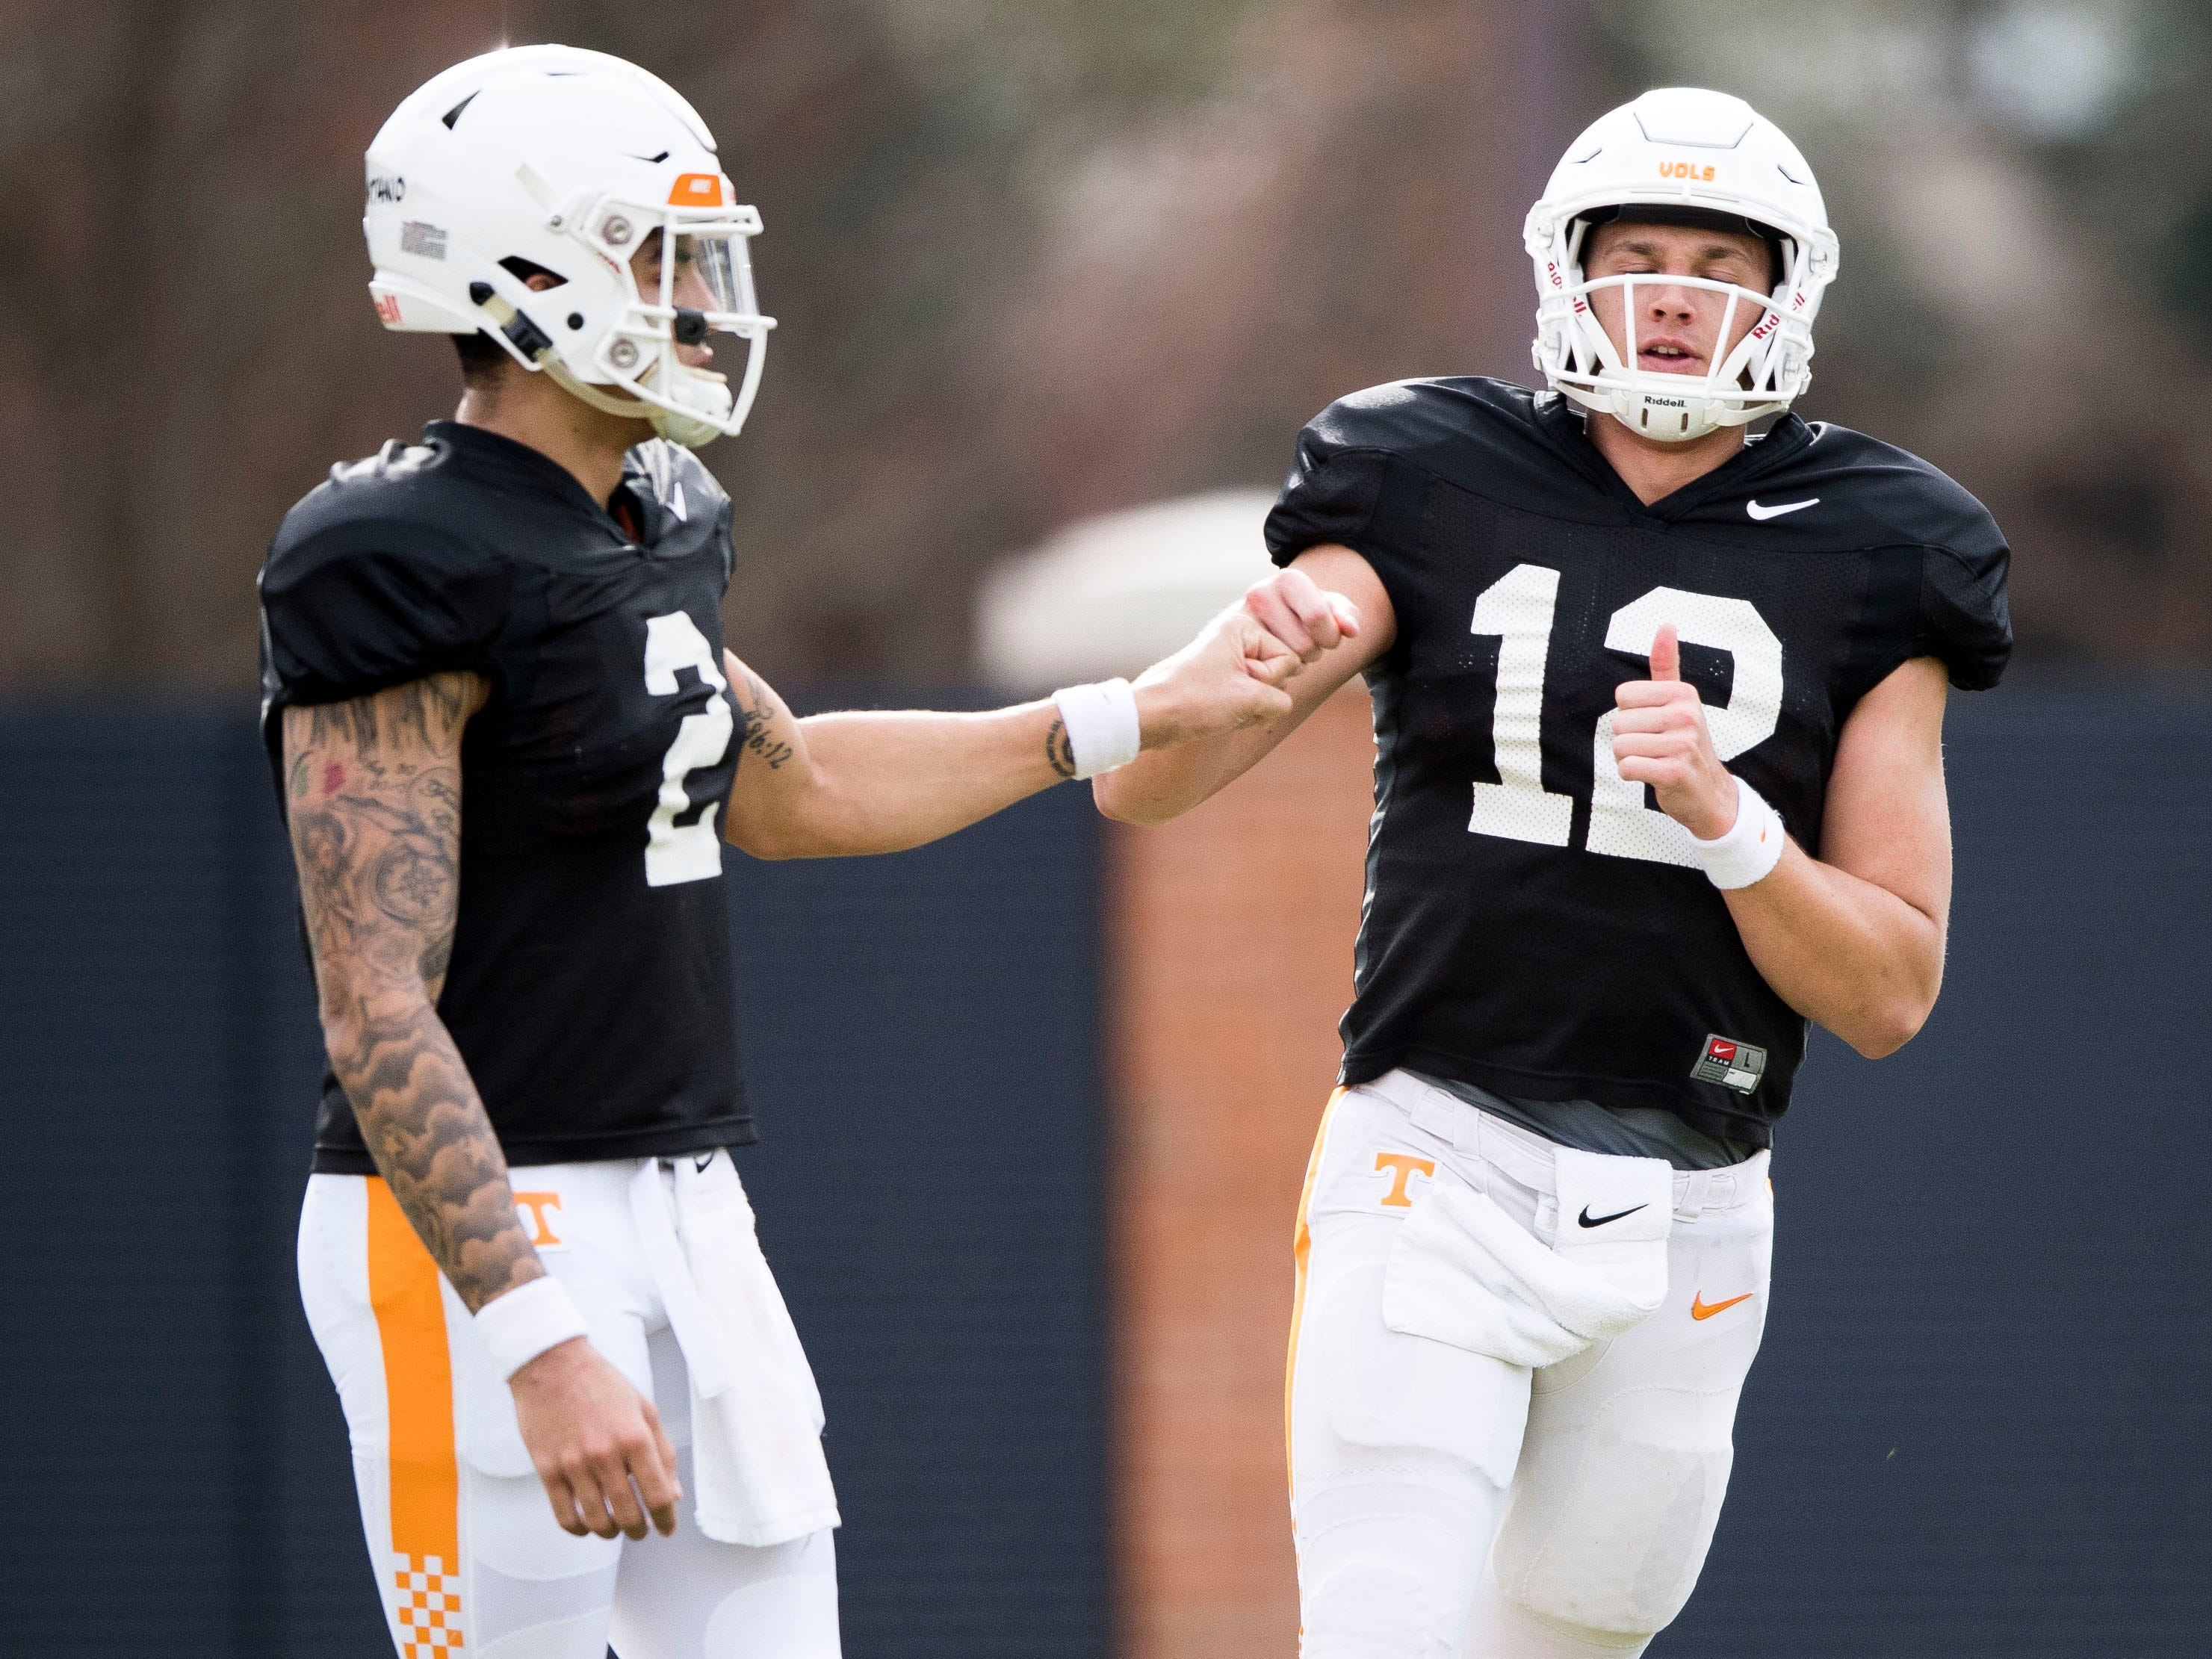 Tennessee quarterback Jarrett Guarantano (2) bumps fists with quarterback JT Shrout (12) during Tennessee's afternoon football practice on Monday, March 11, 2019.